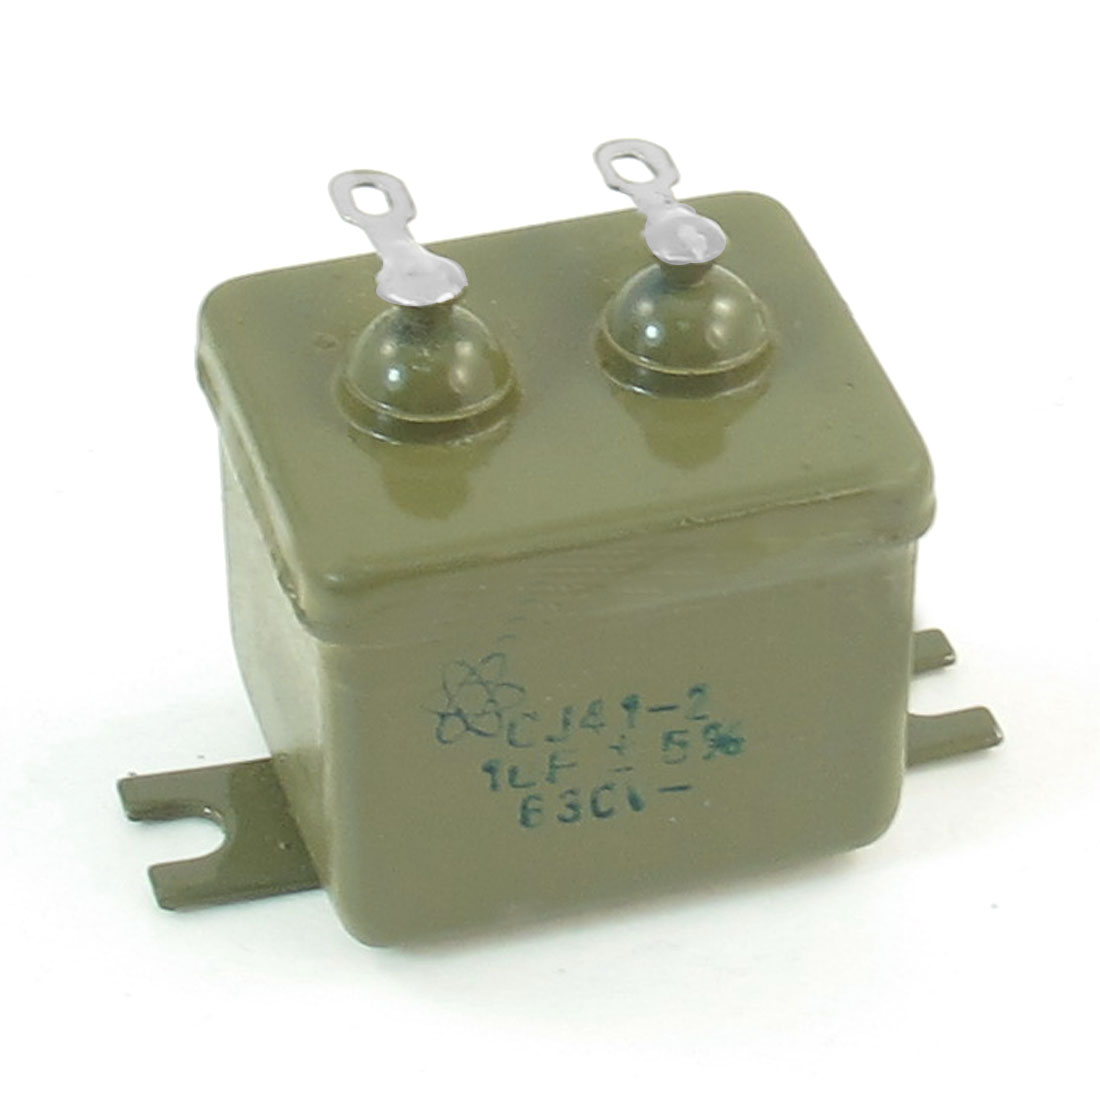 "CJ41-2 1UF/630V 5% Metalized Paper in Oil Capacitor 1.1"" x 1""x 1.2"""